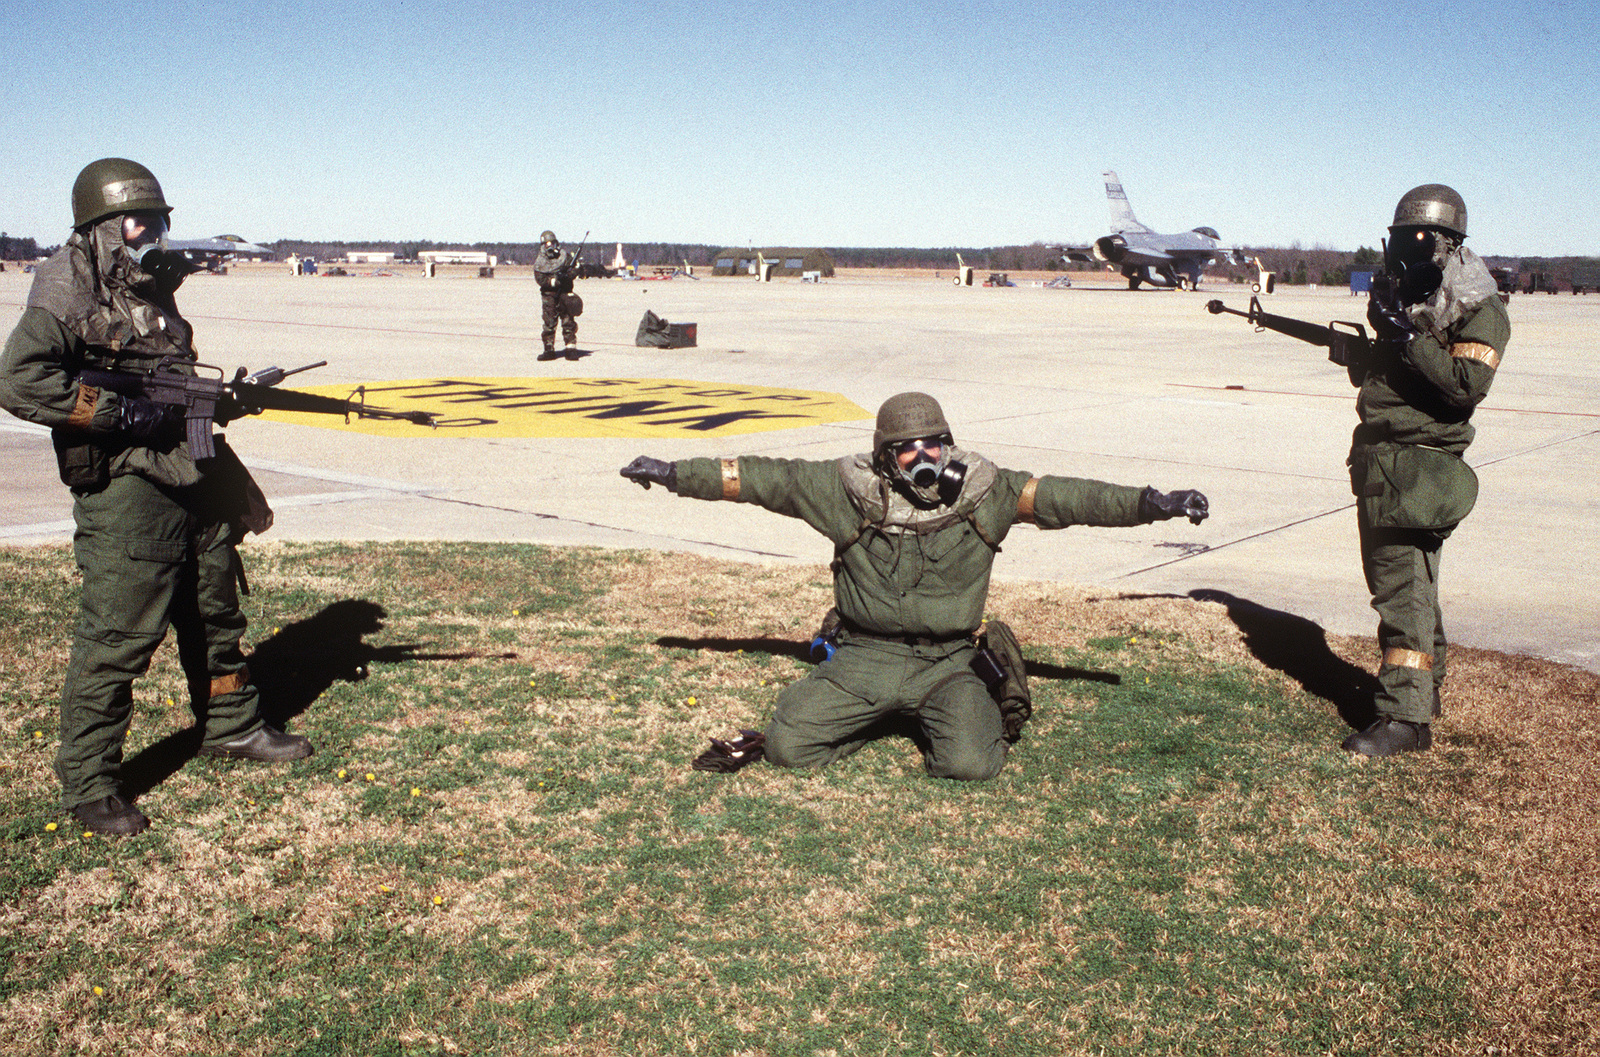 Two Security Police augmentees of the 169th Fighter Wing point their M-16 rifles at their kneeling intruder. They are on the flight line in Condition Black of an Operation Readiness Exercise. They all wear protective chemical warfare suits